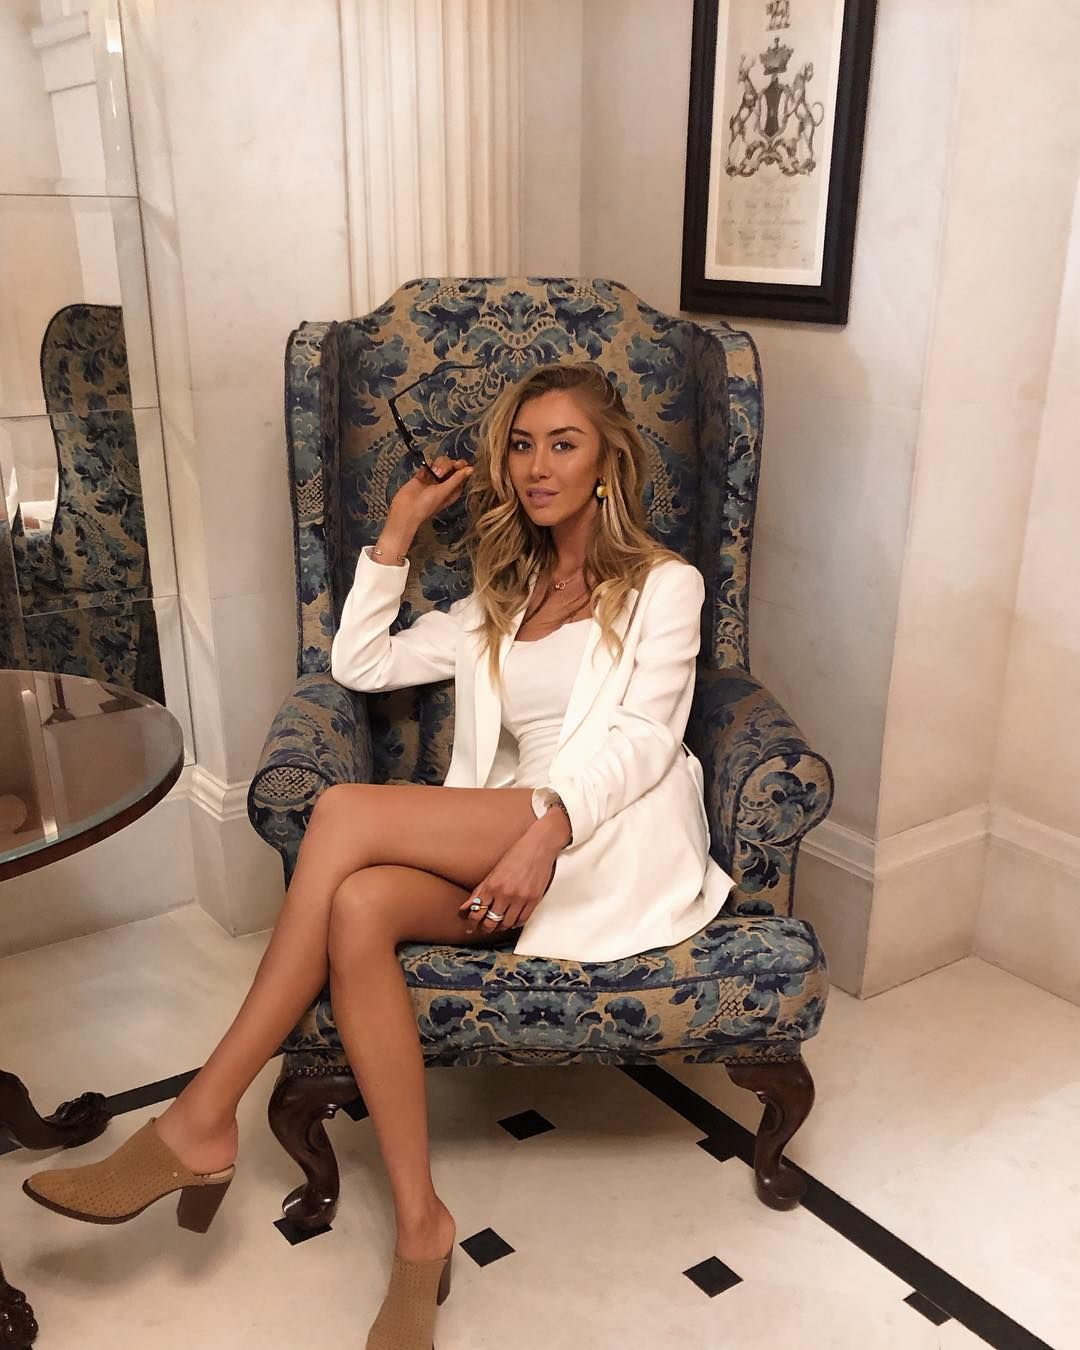 Image may contain: Made in Chelsea cast are actually from, Made in Chelsea, cast, place of birth, from, Habbs, Sophie Habboo, Sitting, Furniture, High Heel, Person, Human, Shoe, Footwear, Clothing, Apparel